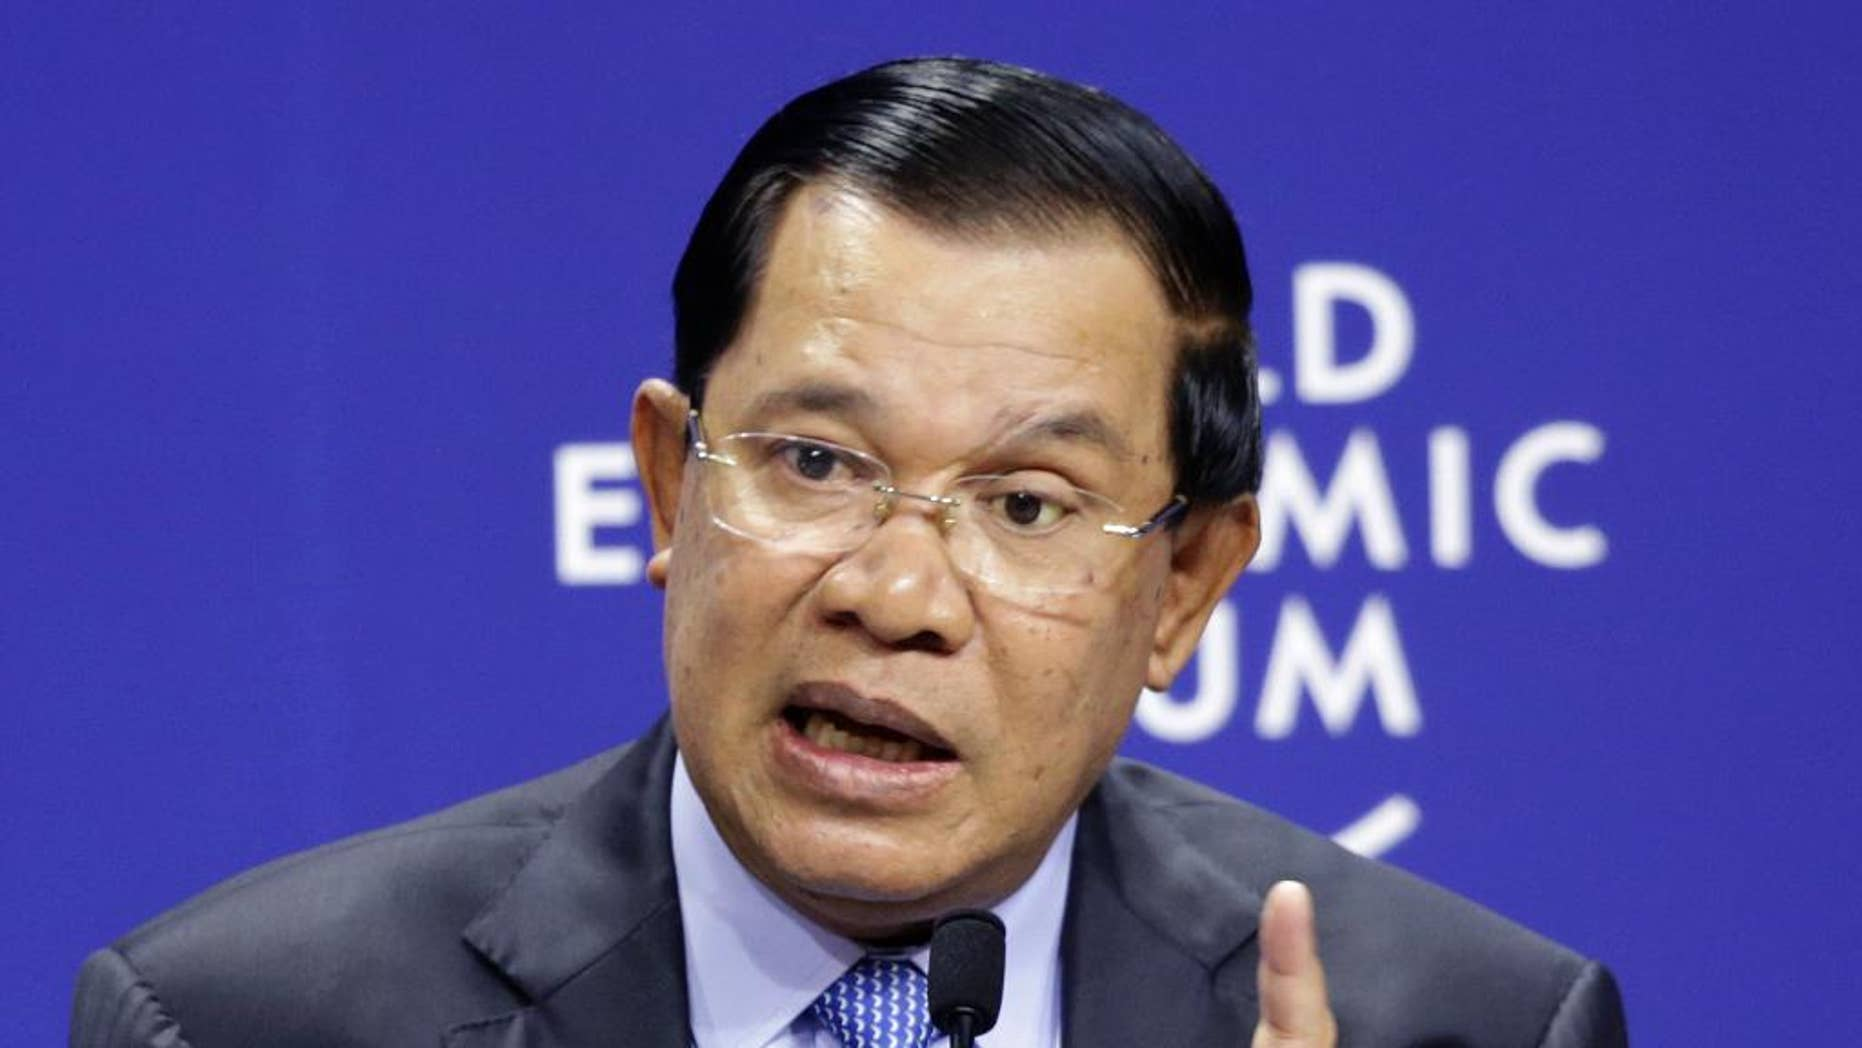 """FILE In this April 21, 2015 file photo, Cambodia's Prime Minister Hun Sen speaks during a session at the World Economic Forum on East Asia in Jakarta, Indonesia. Prime Minister Hun Sen threatened Tuesday, April 12, 2016,  to arrest anyone who repeats opposition accusations that his government used """"fake maps"""" to demarcate the country's border with Vietnam, reviving a campaign of pressure against his foes and critics. (AP Photo/Achmad Ibrahim, File)"""